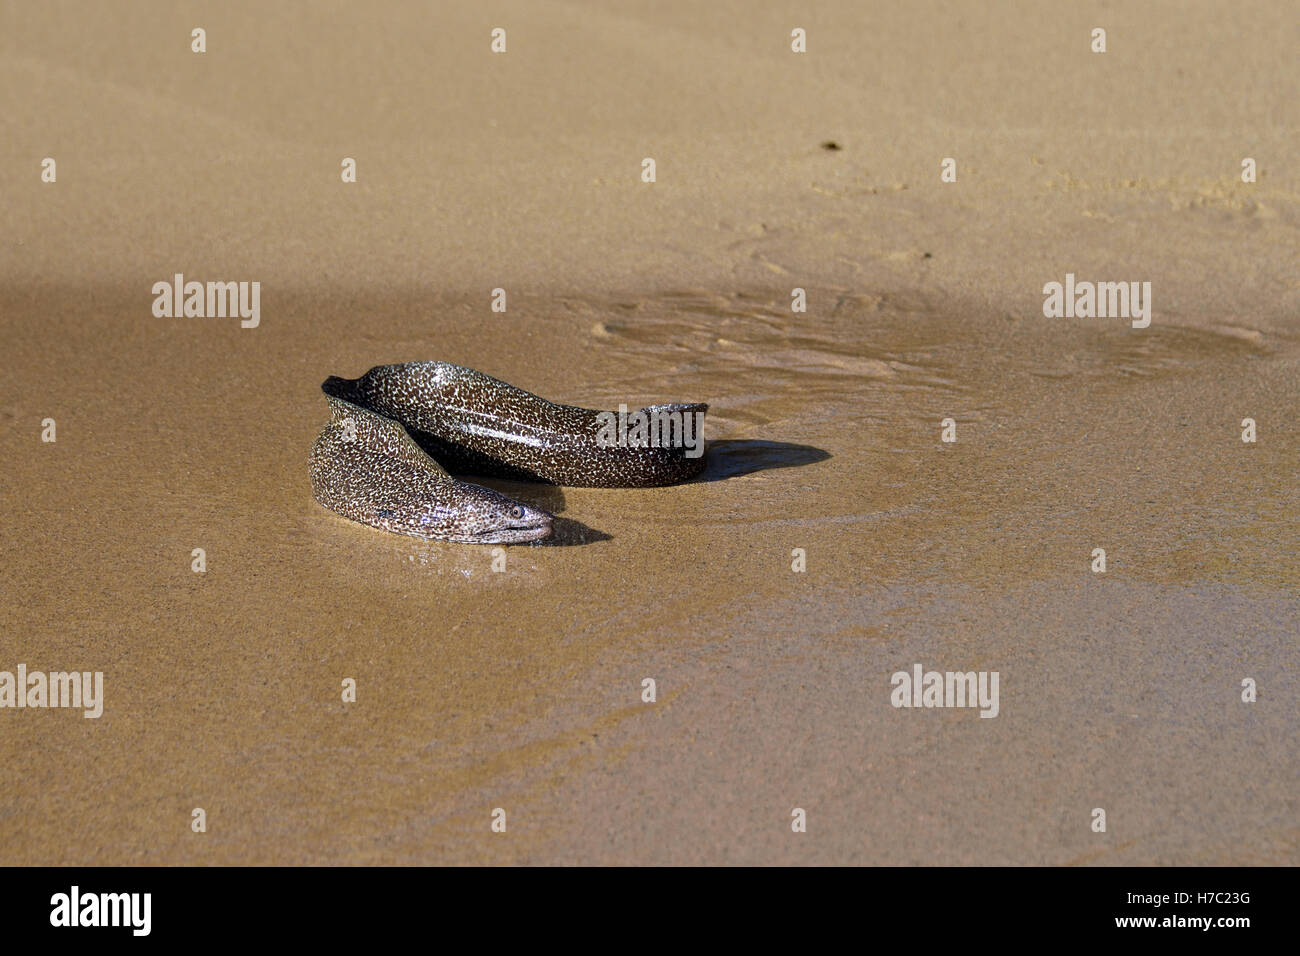 Spotted Moray Eel (Gymnothorax moringa) on the beach in Comfortless Cove on Ascension Island Stock Photo